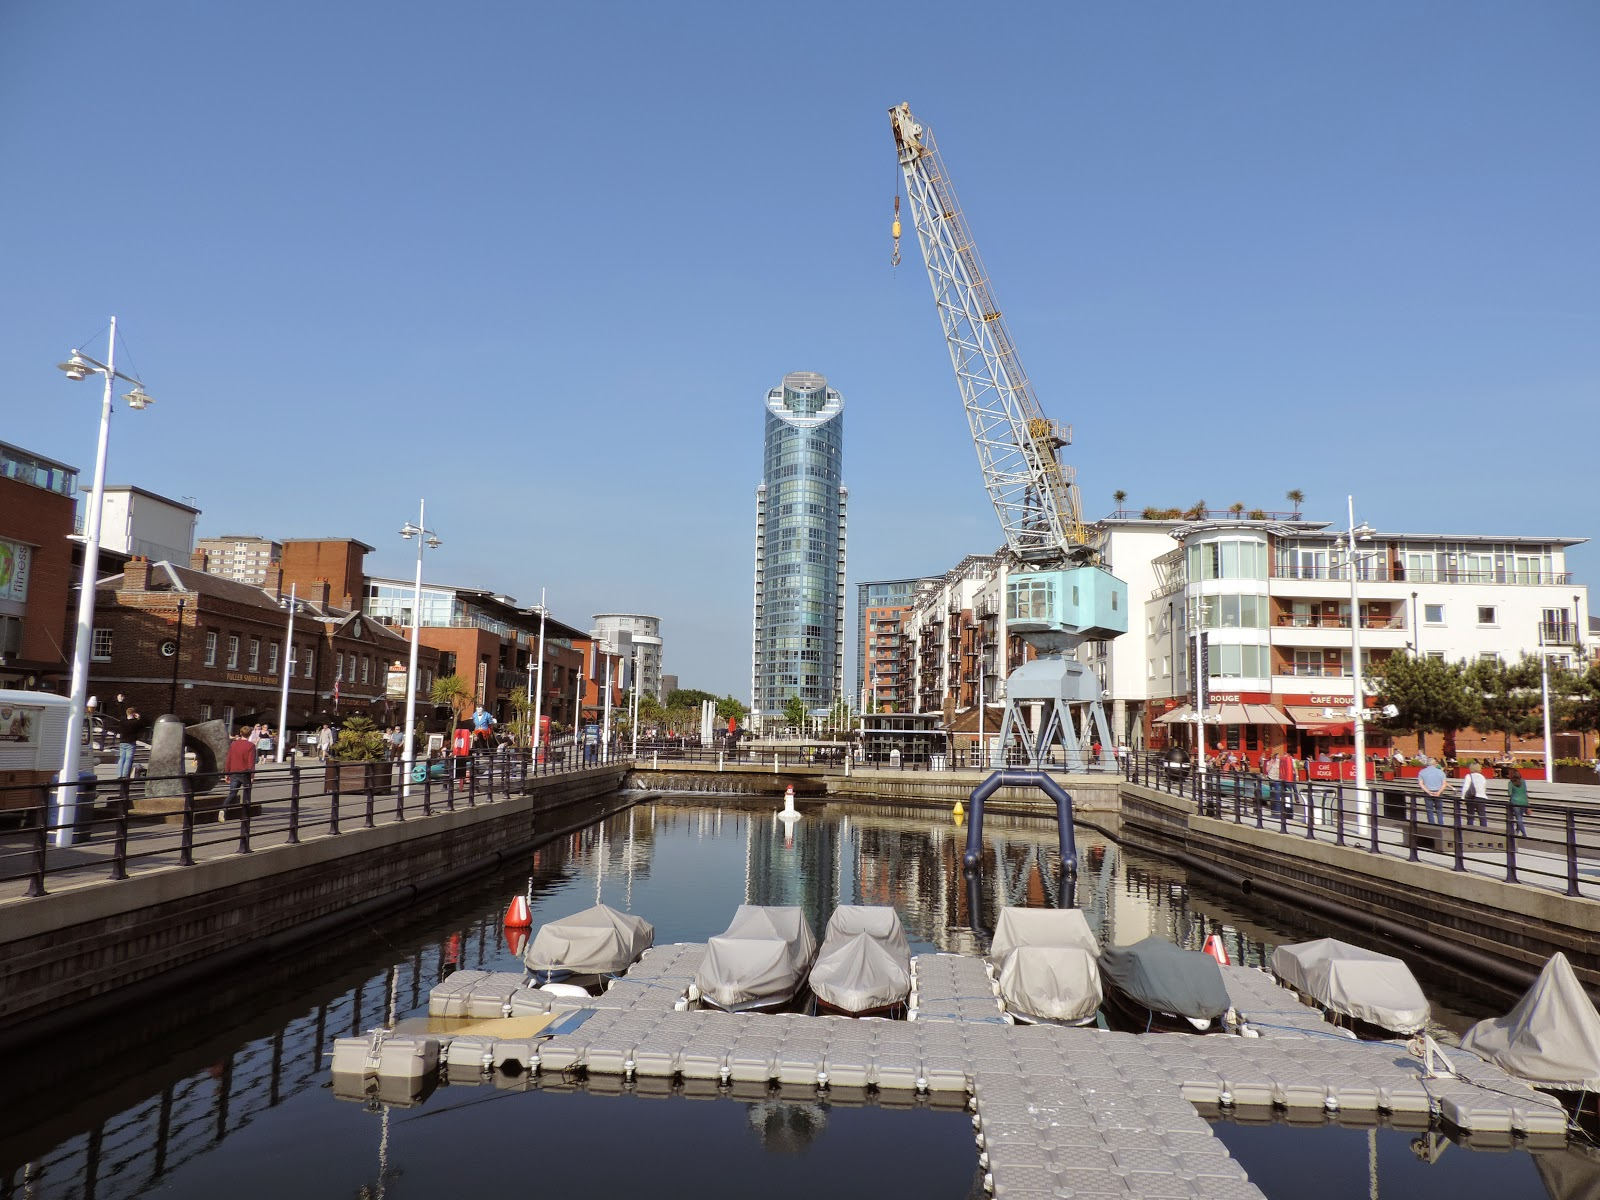 Gunwharf quays inner basin and loading crane